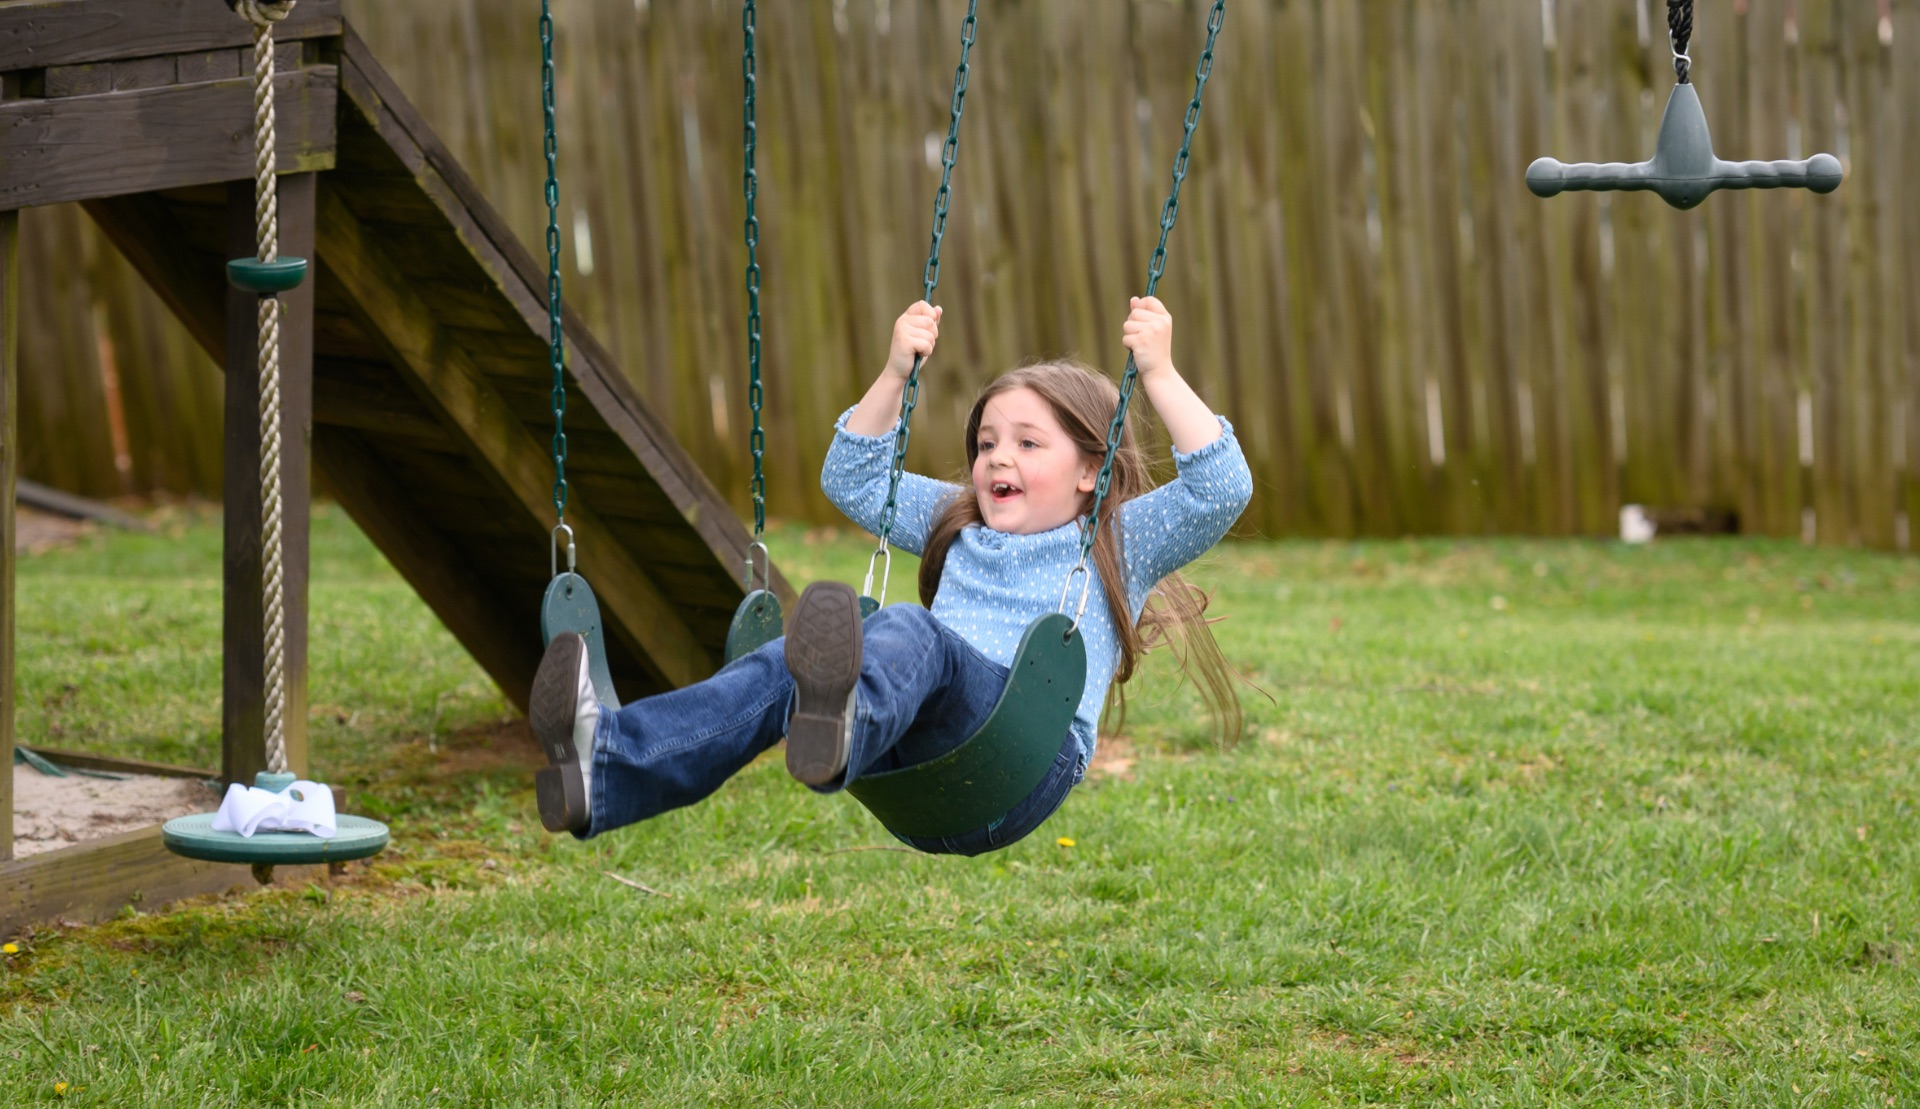 Henley smiles as she swings back and forth on a playground.